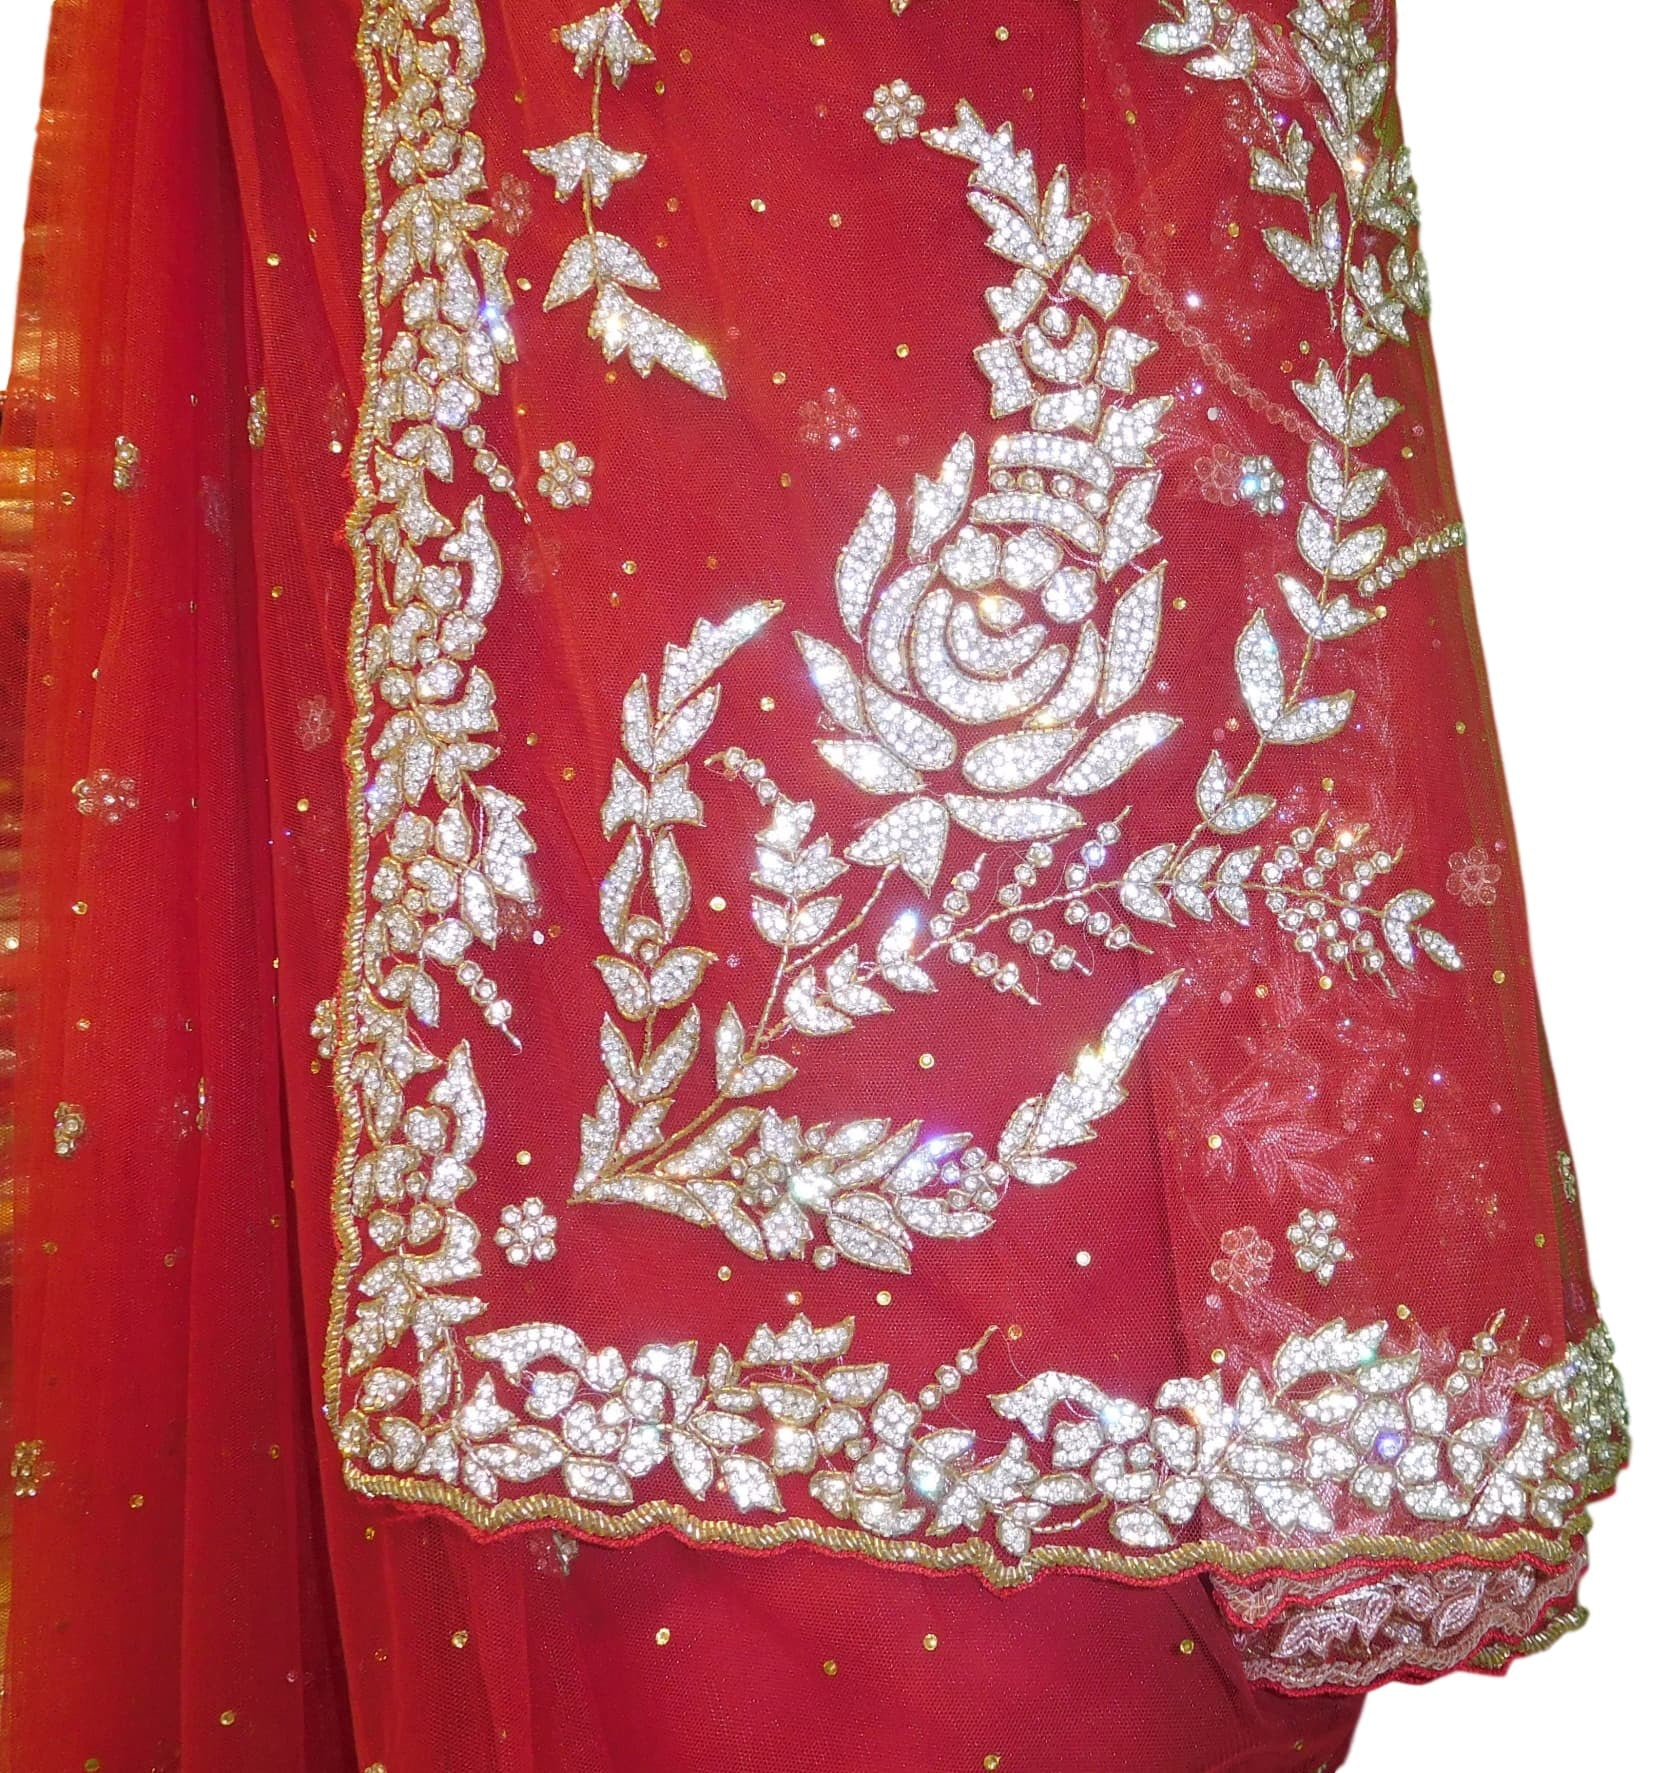 Red Bridal Designer Hand Embroidery Net Sari With Cutwork Border Saree